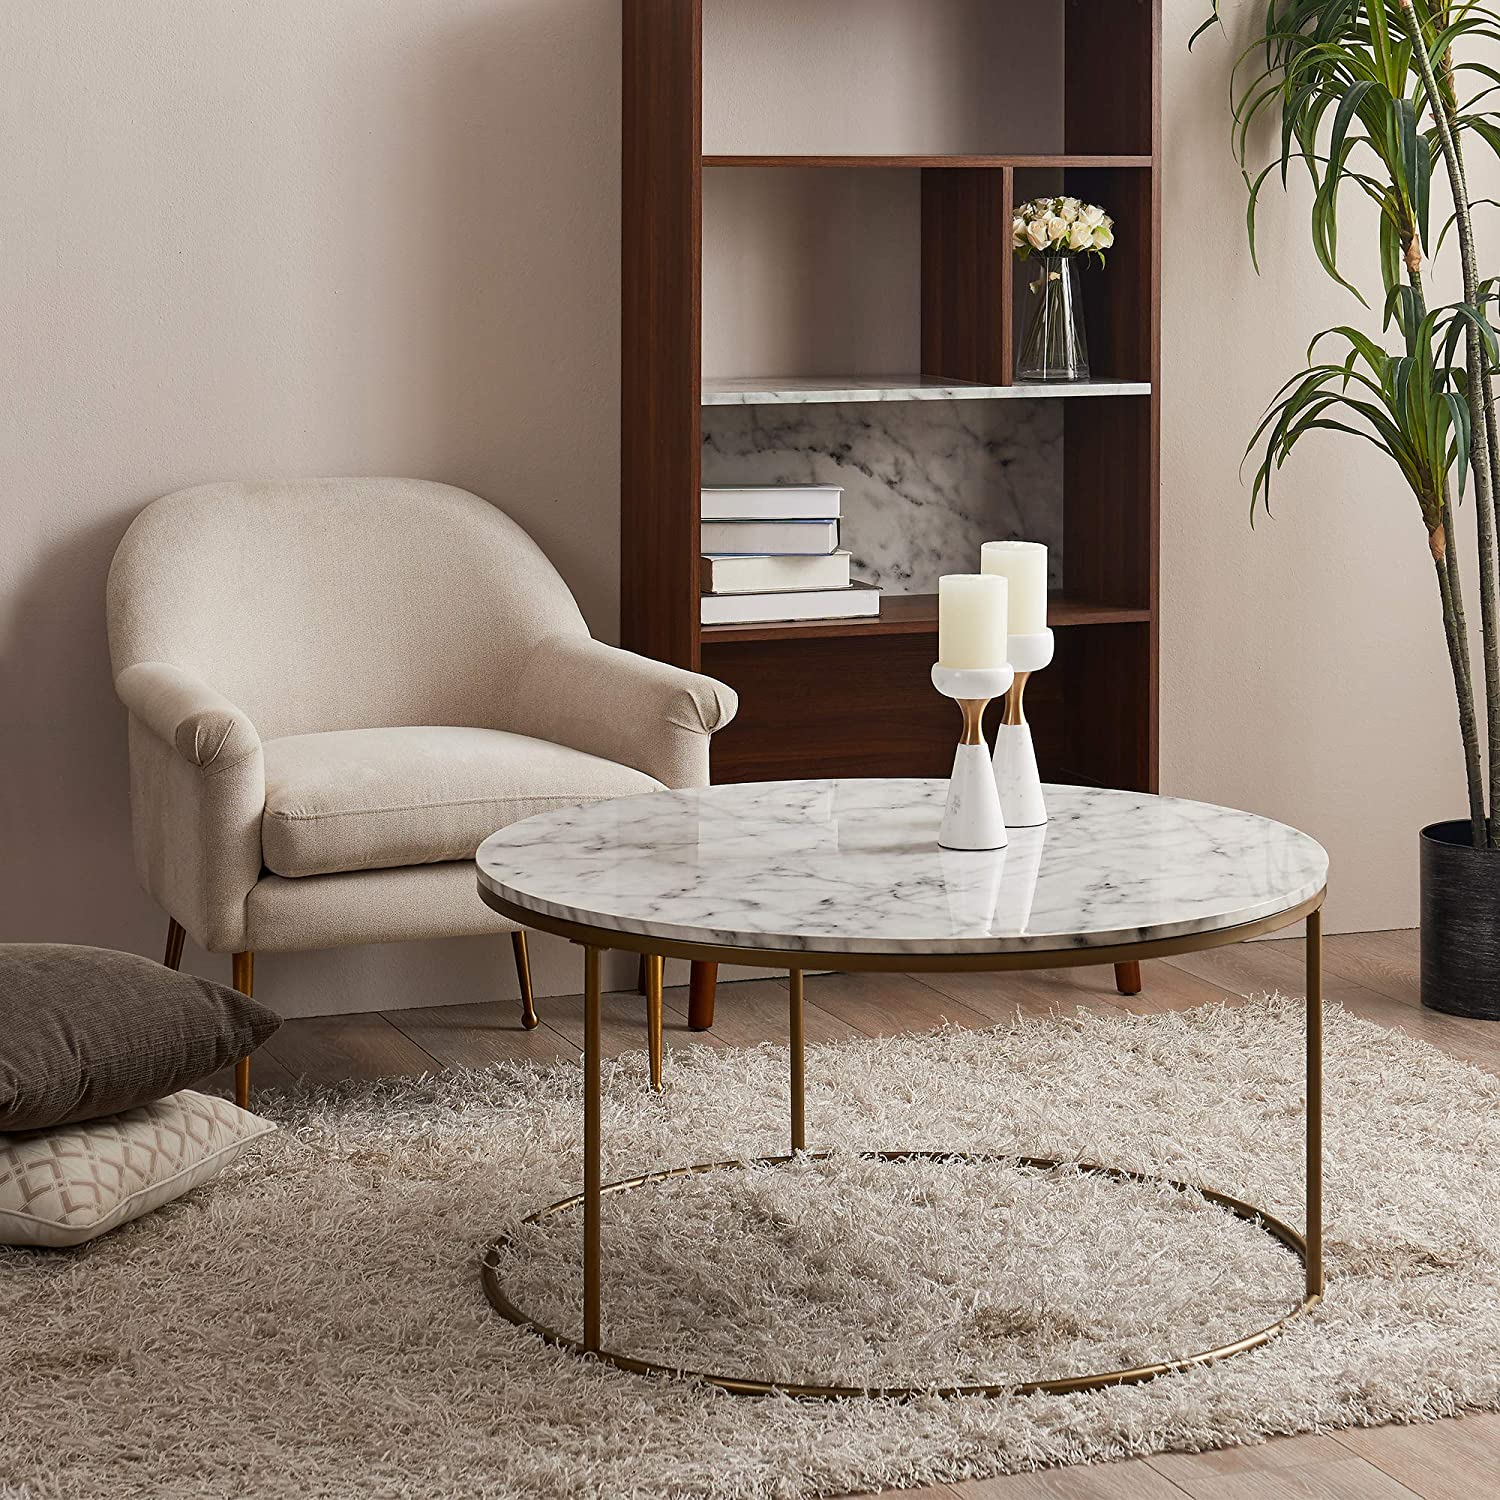 Marmo Ronde Table Basse Versanora Faux marbre//Laiton VNF-00075